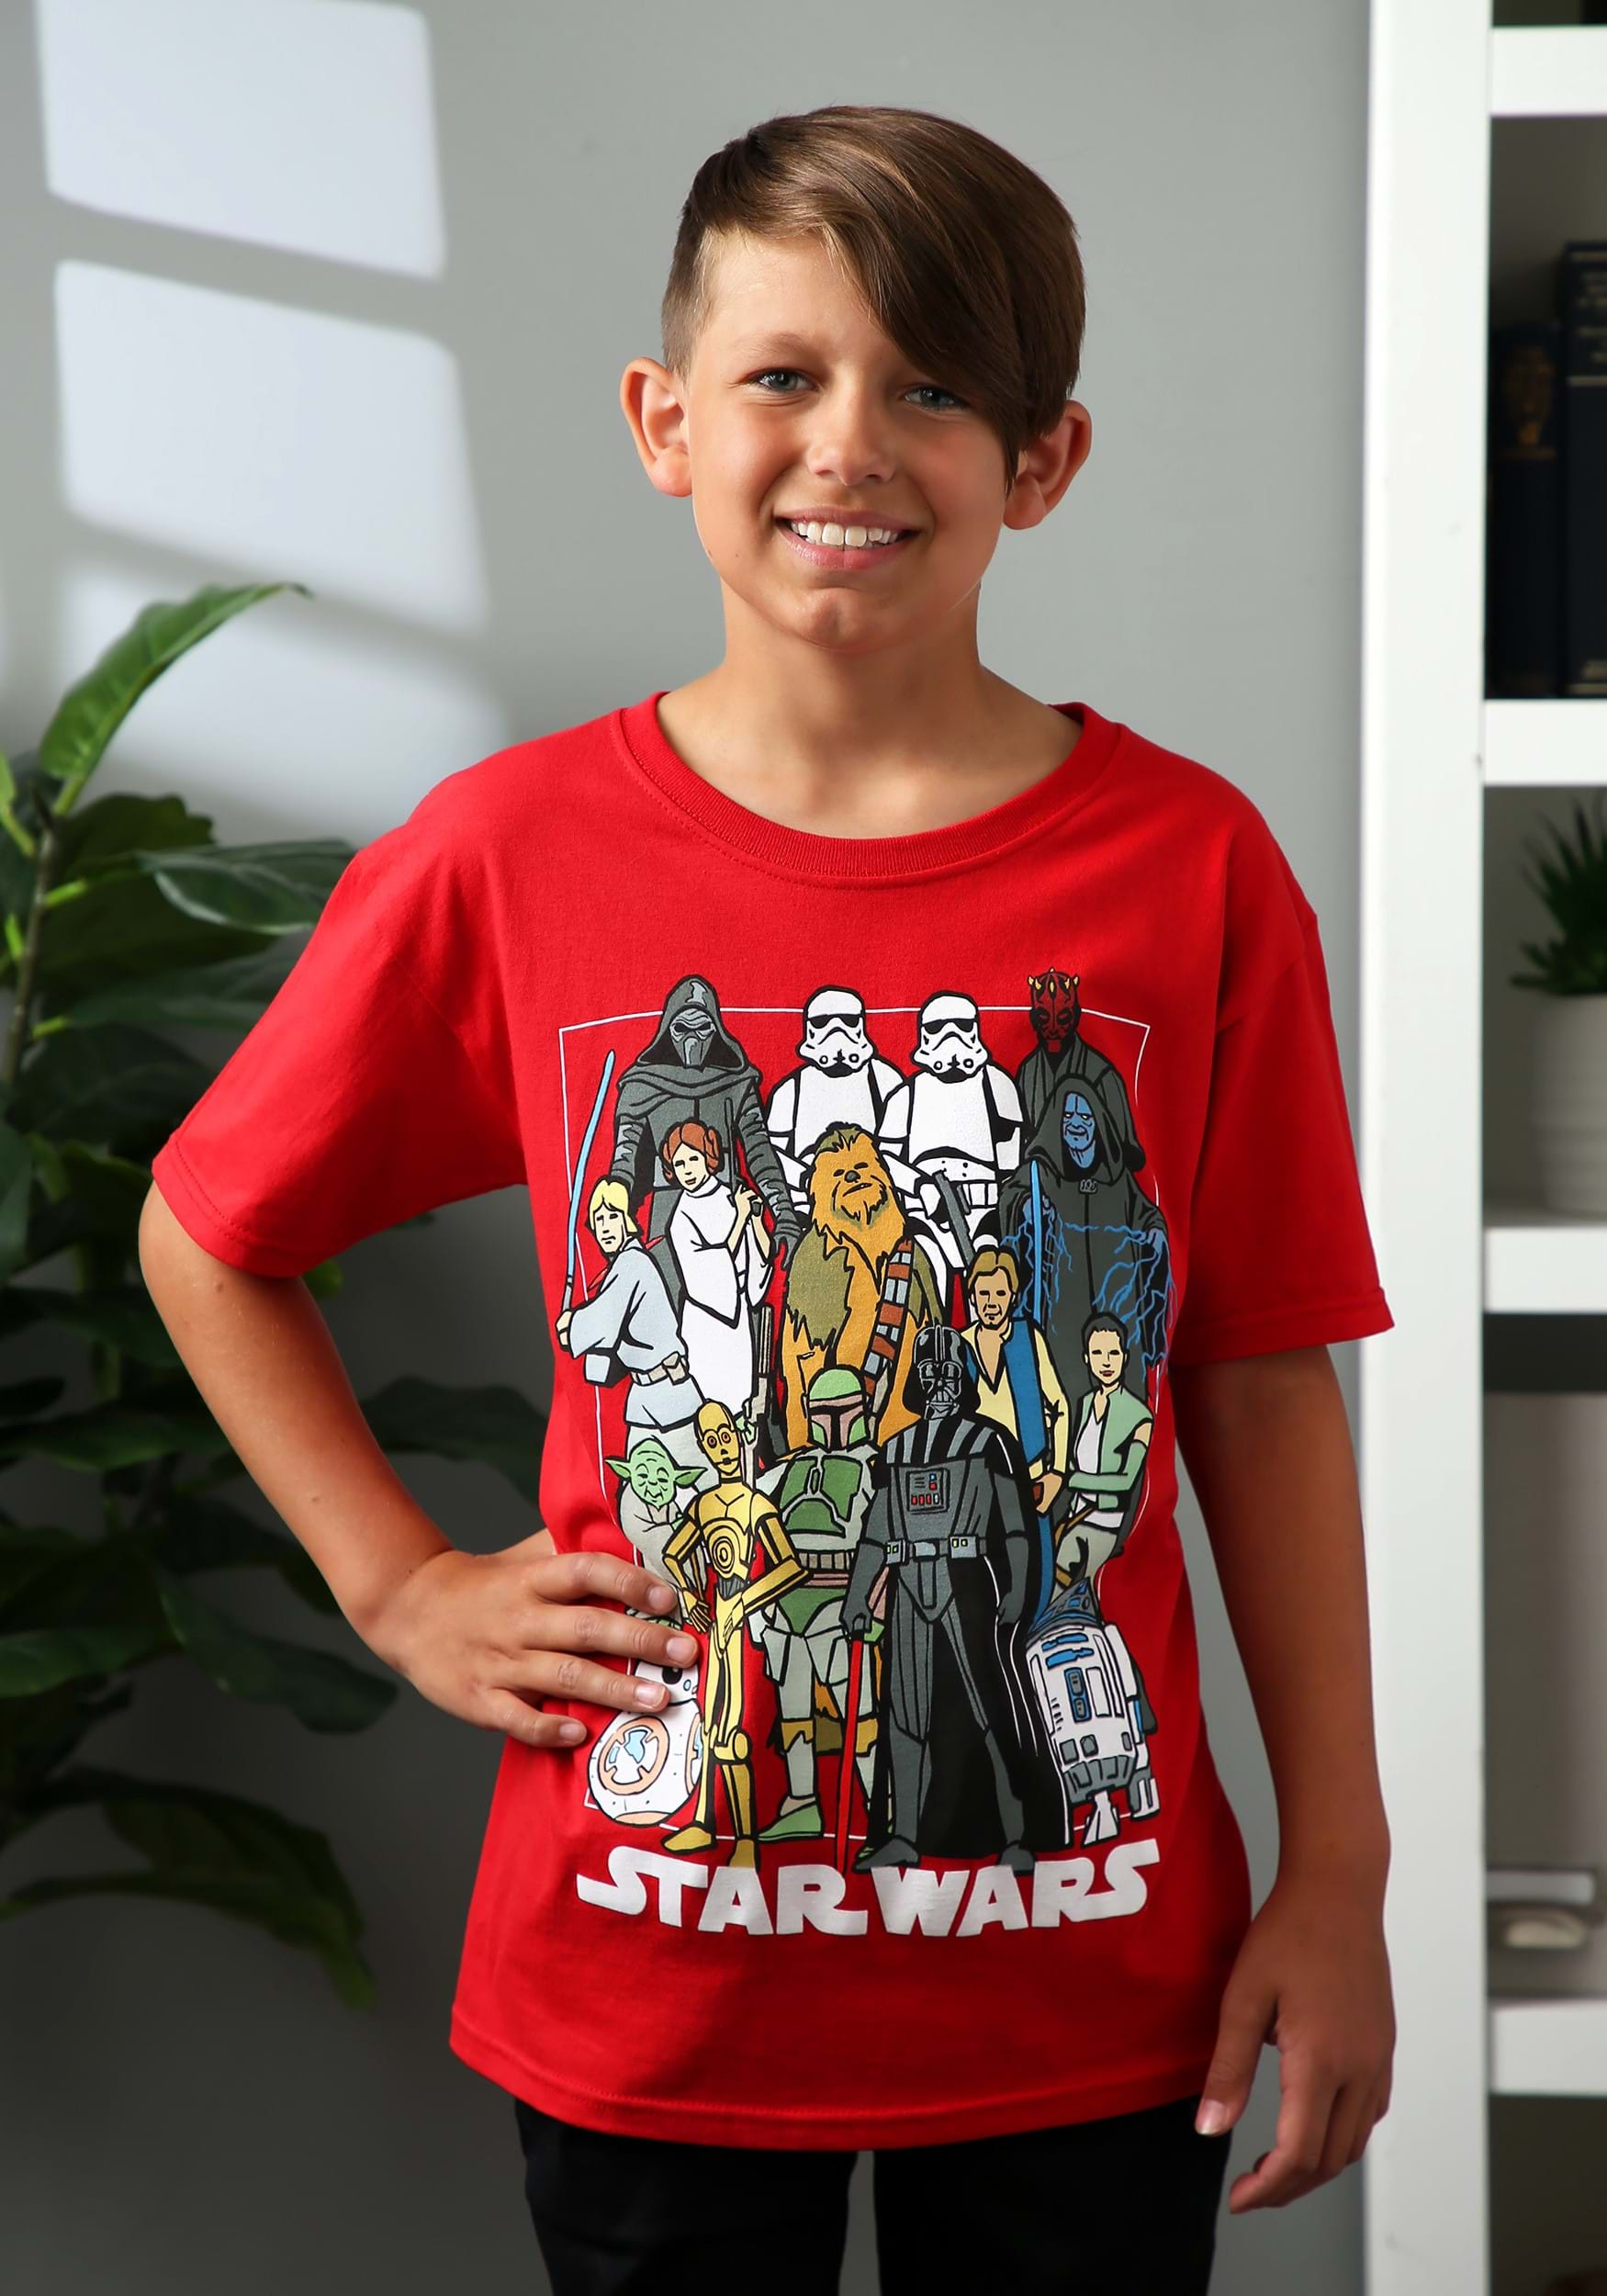 OR 2XL YOU CHOOSE BOBA FETT NEW BOY/'S STAR WARS CHARACTERS RED T-SHIRT SZ 8 MED